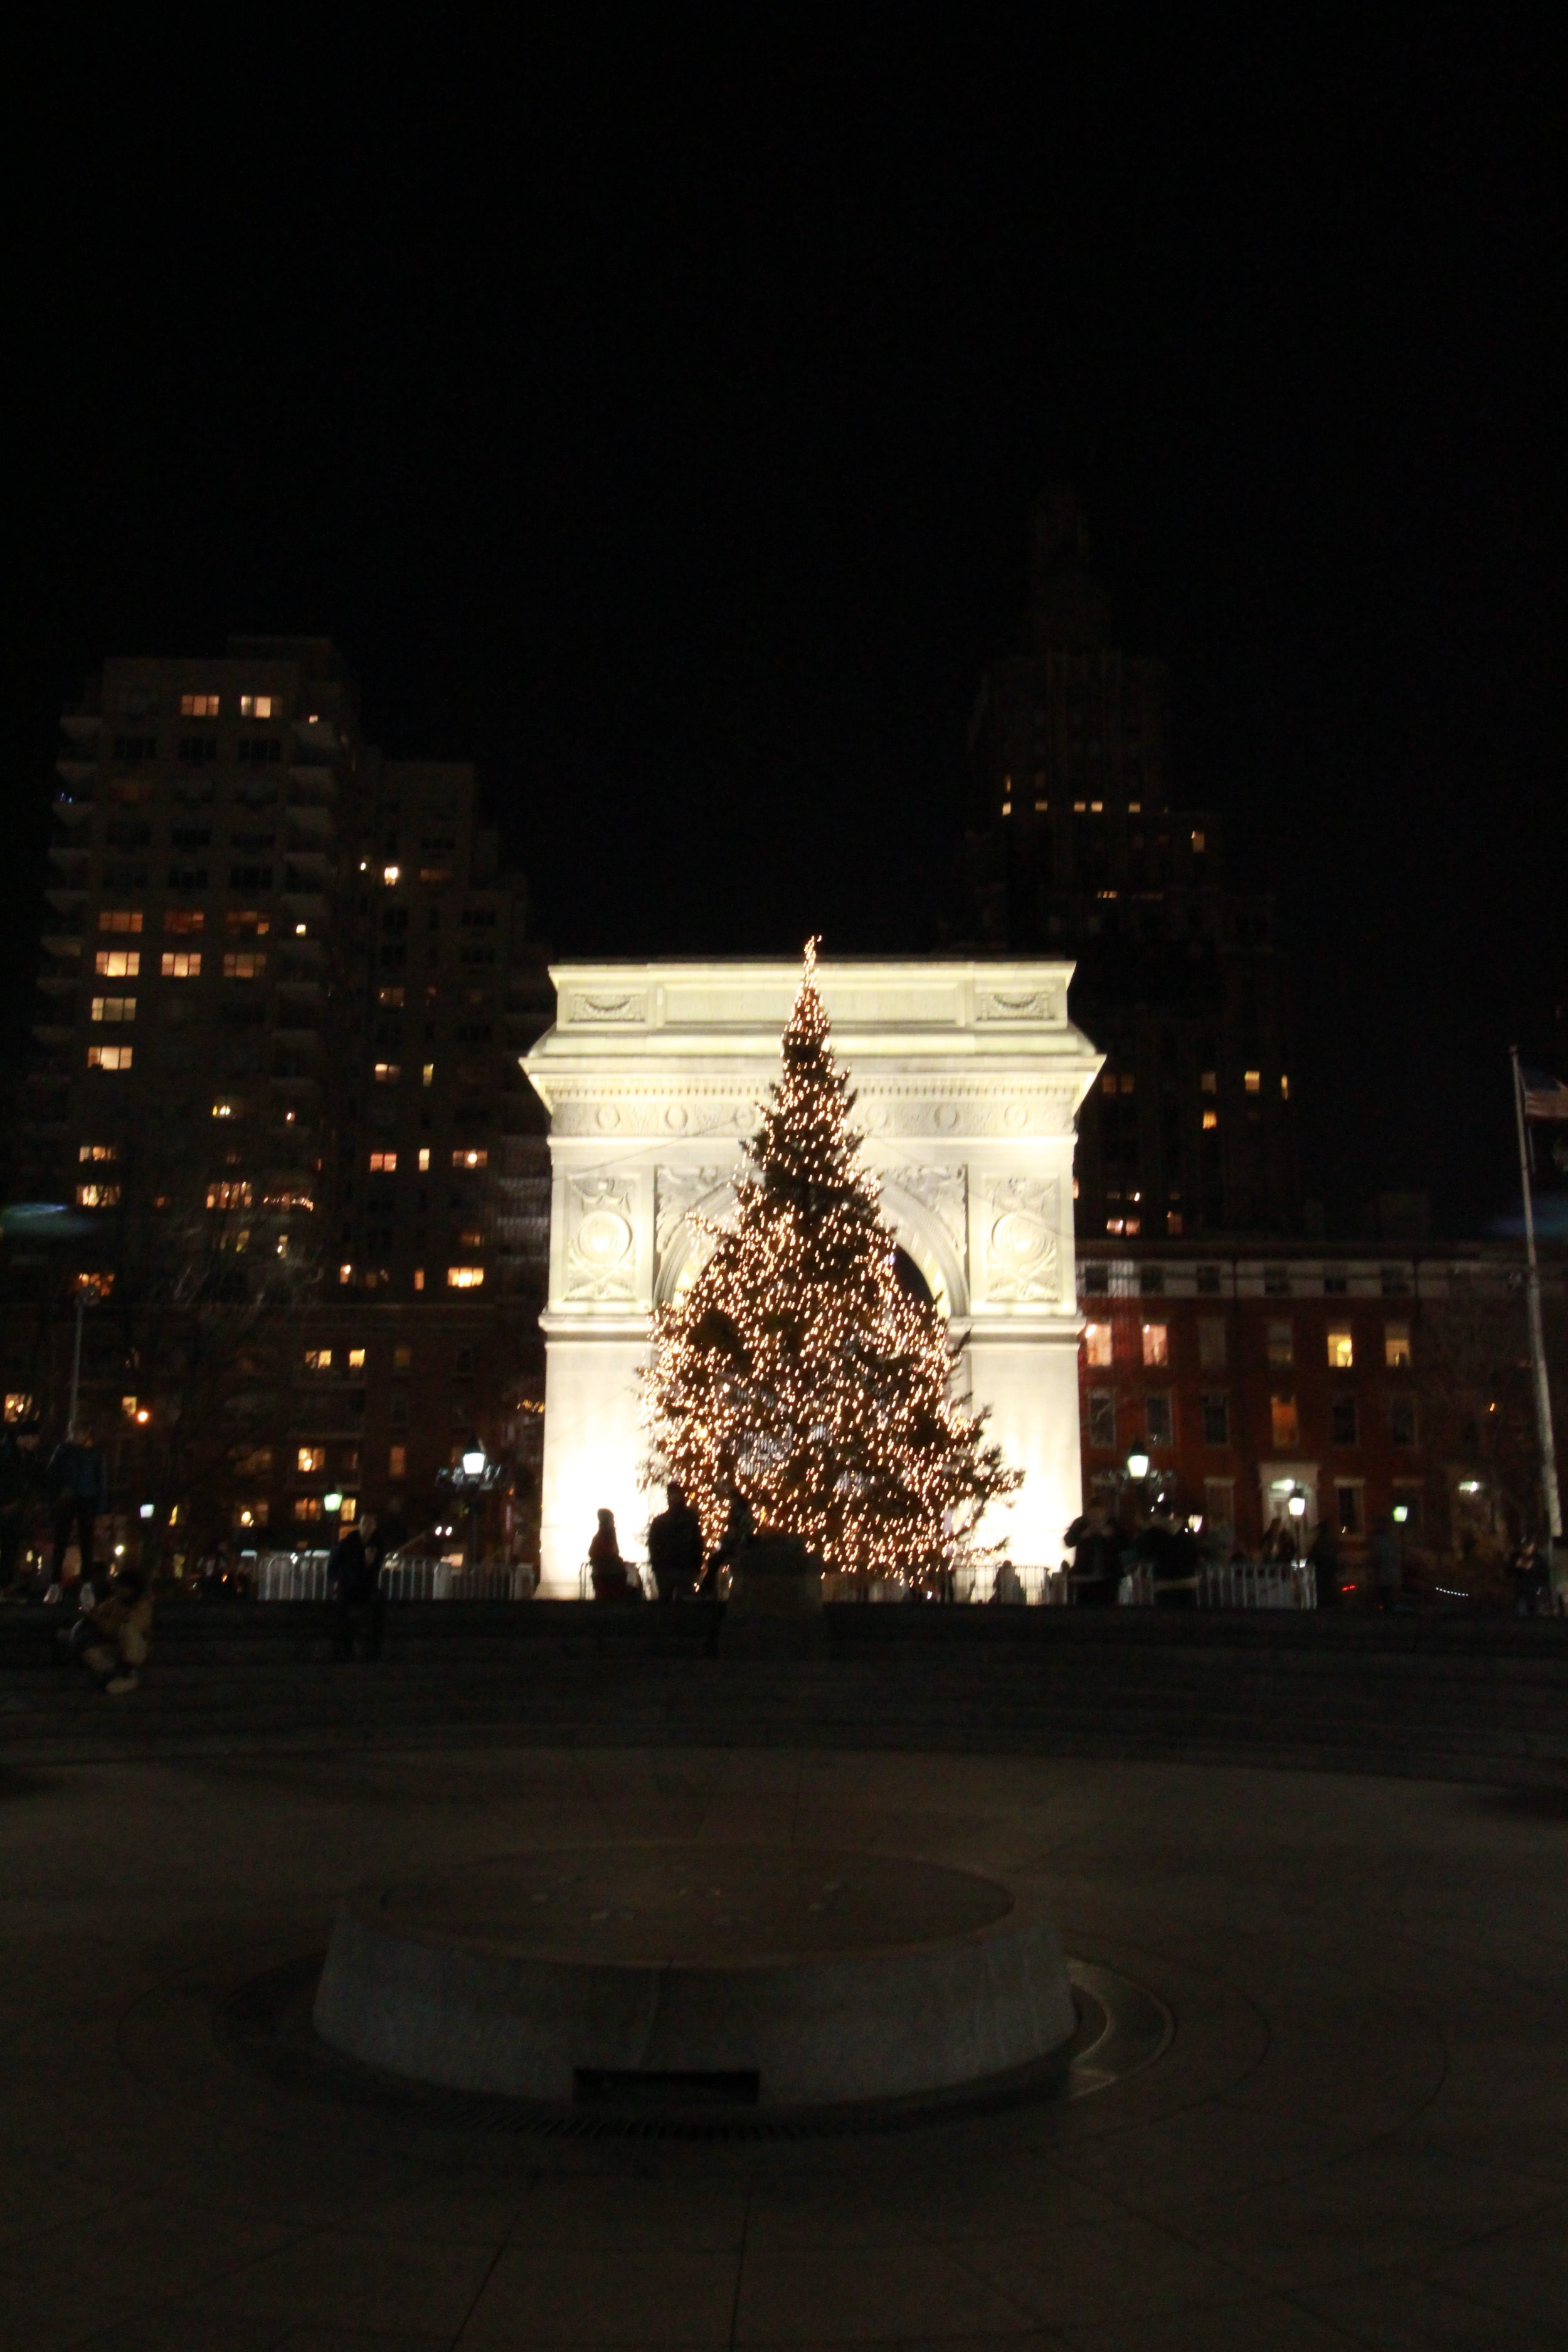 Beautifully framed Washington Square Park Christmas Tree.